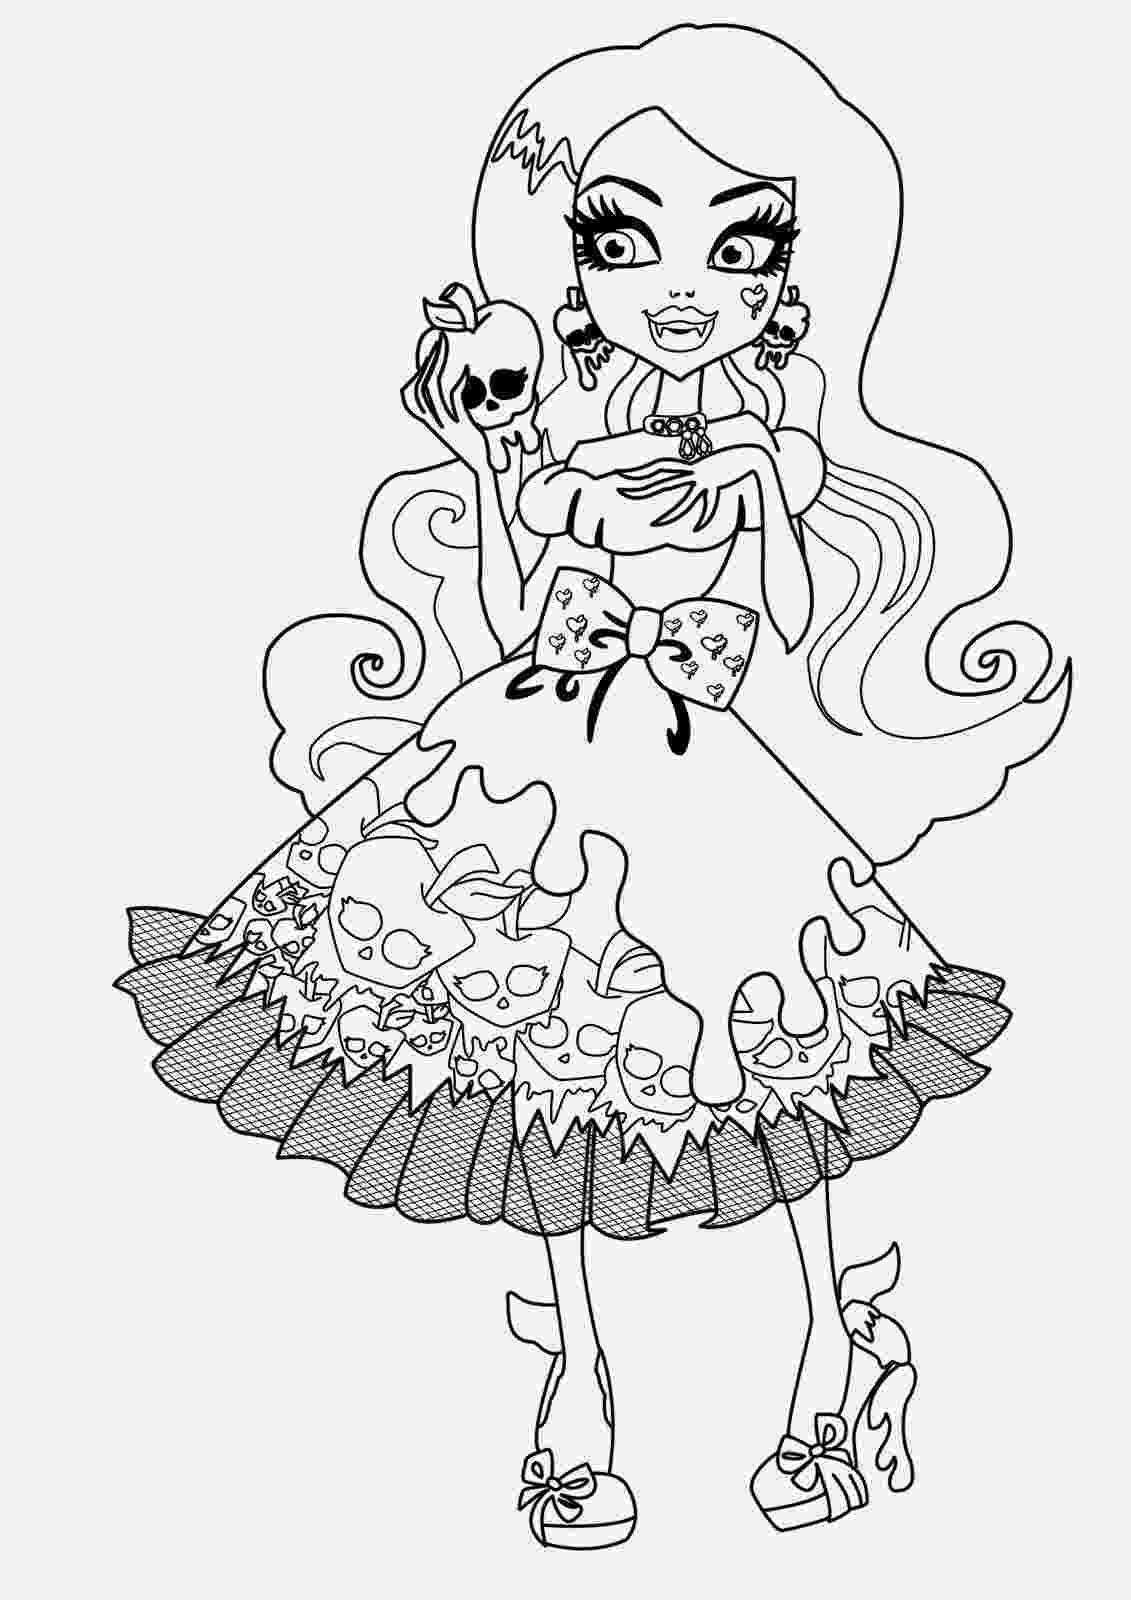 coloring page monster high coloring pages monster high coloring pages free and printable coloring monster page high